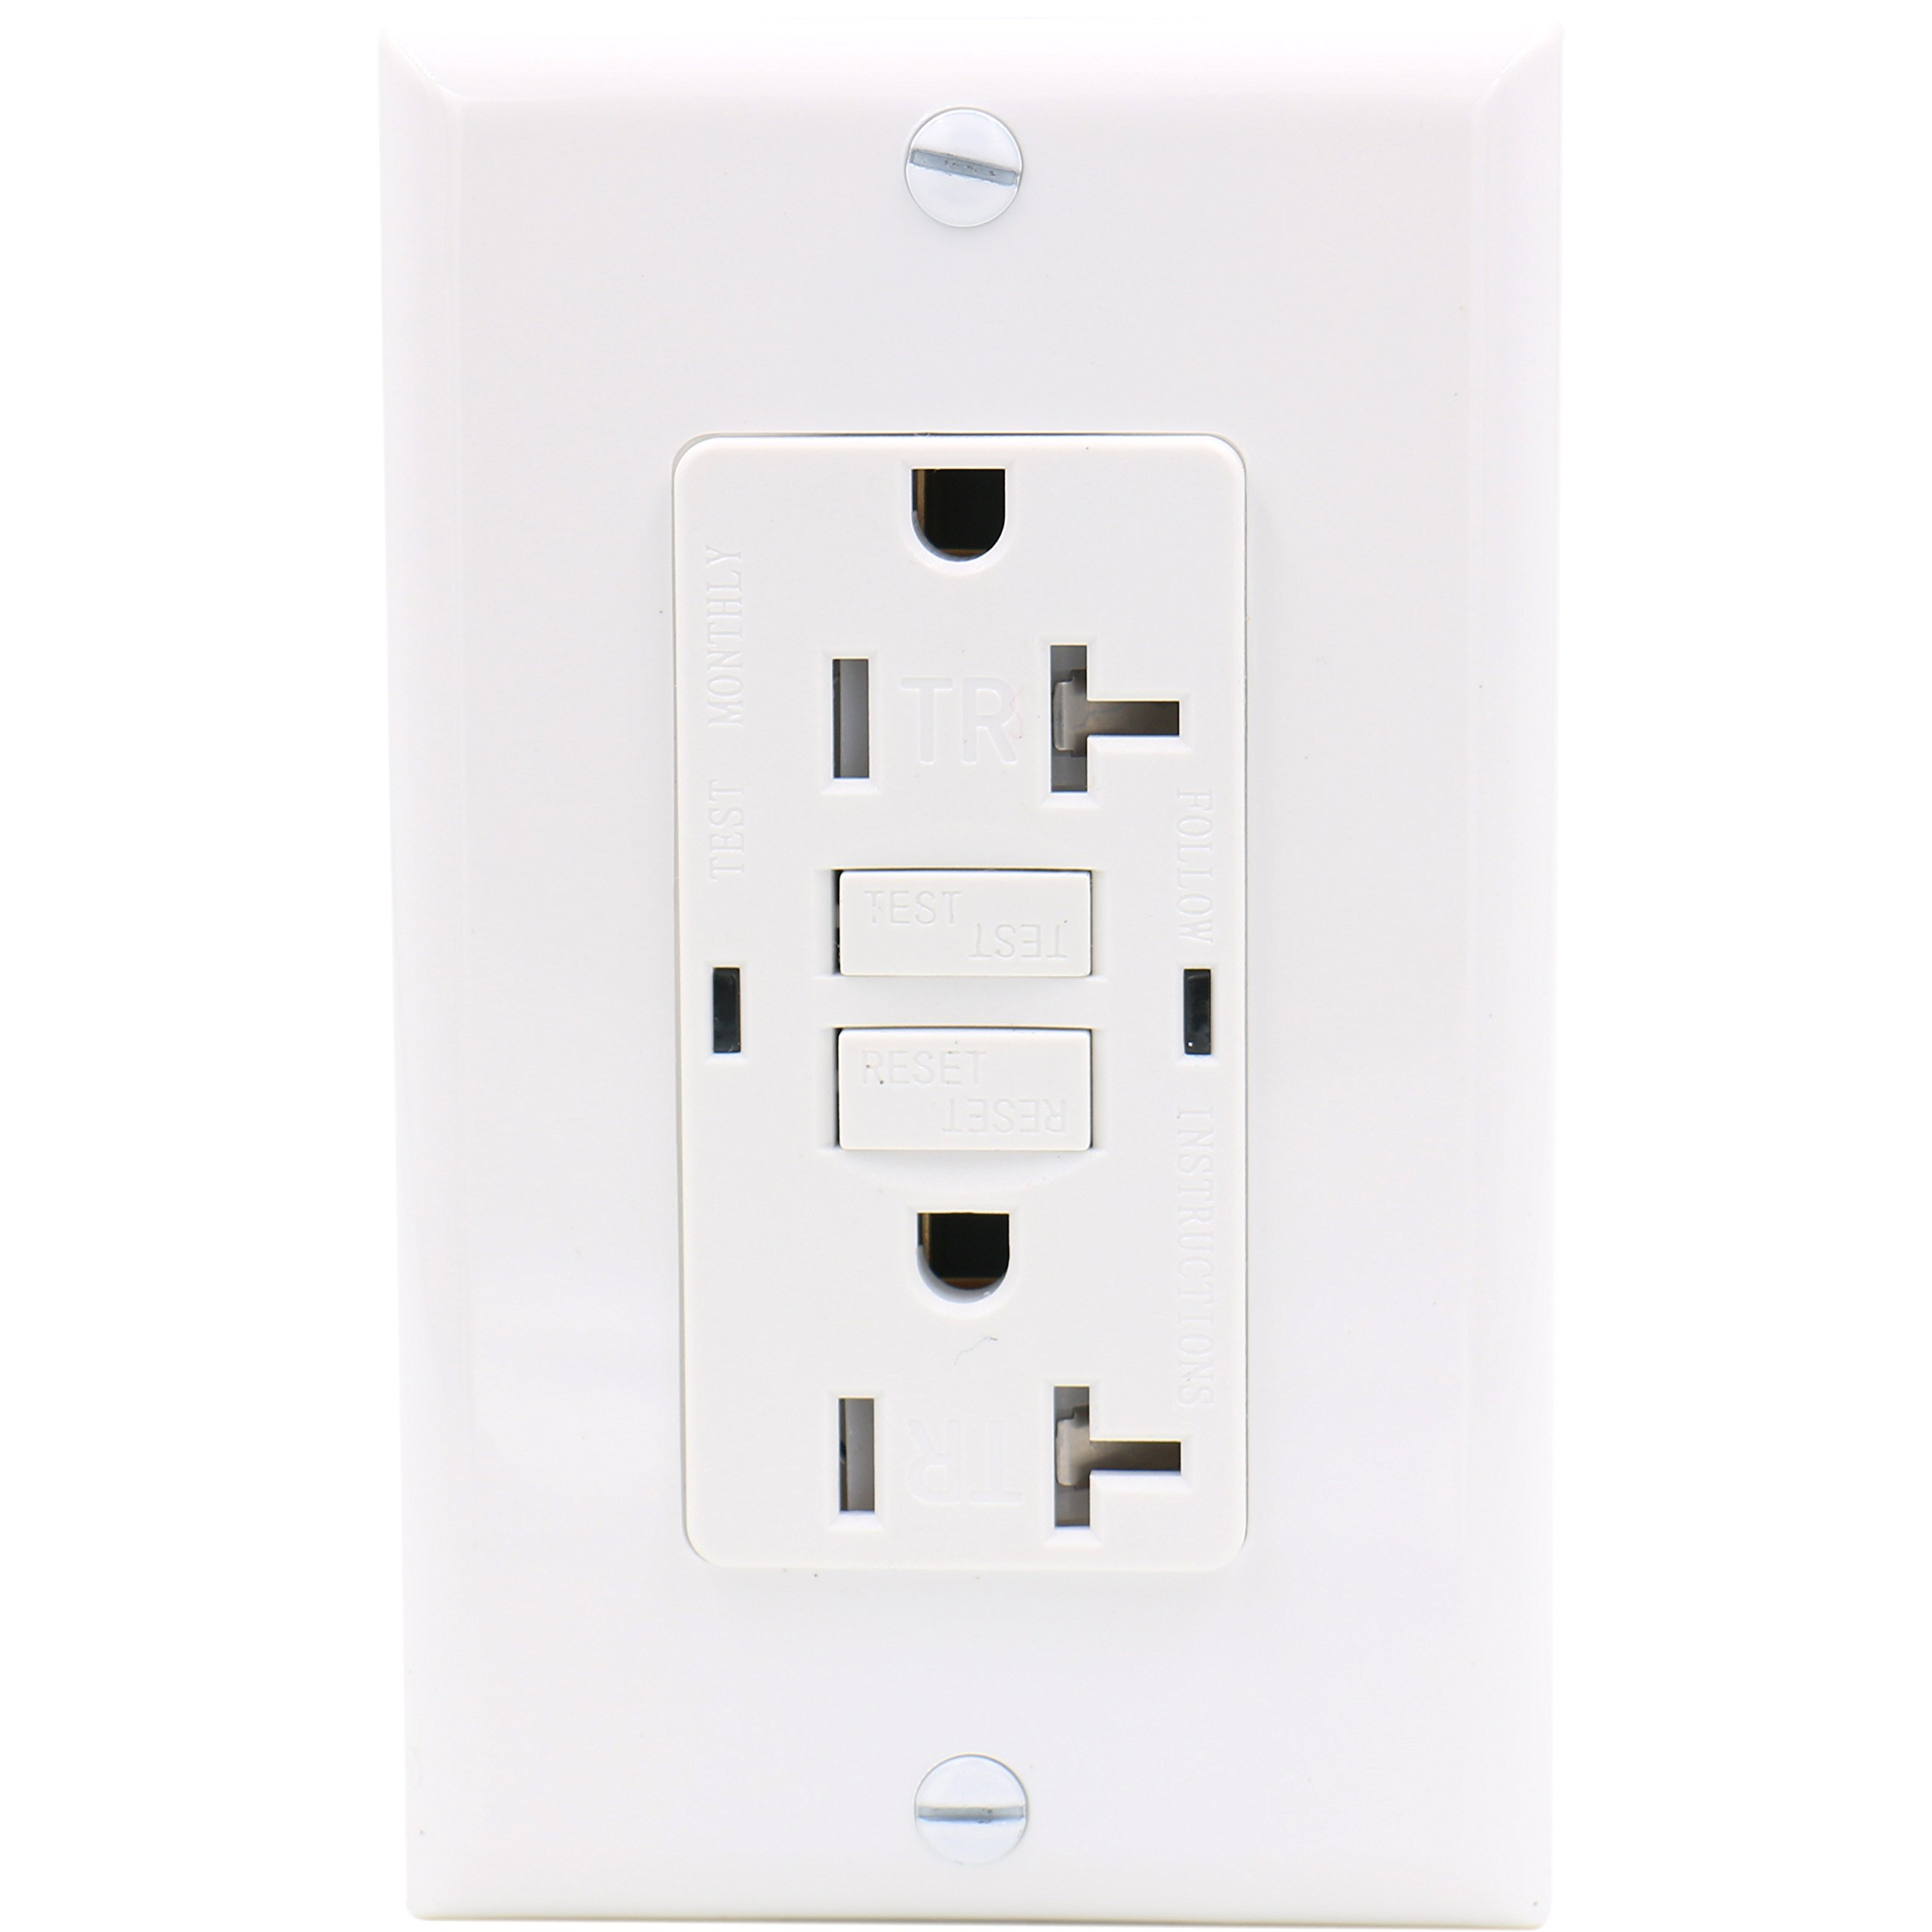 Baomain GFCI Outlet Receptacle 20Amp 120VAC 60Hz Tamper-Resistant Outlet, Ground Fault Circuit Interruptor, LED indicator UL&CUL listed with Wall Plate White